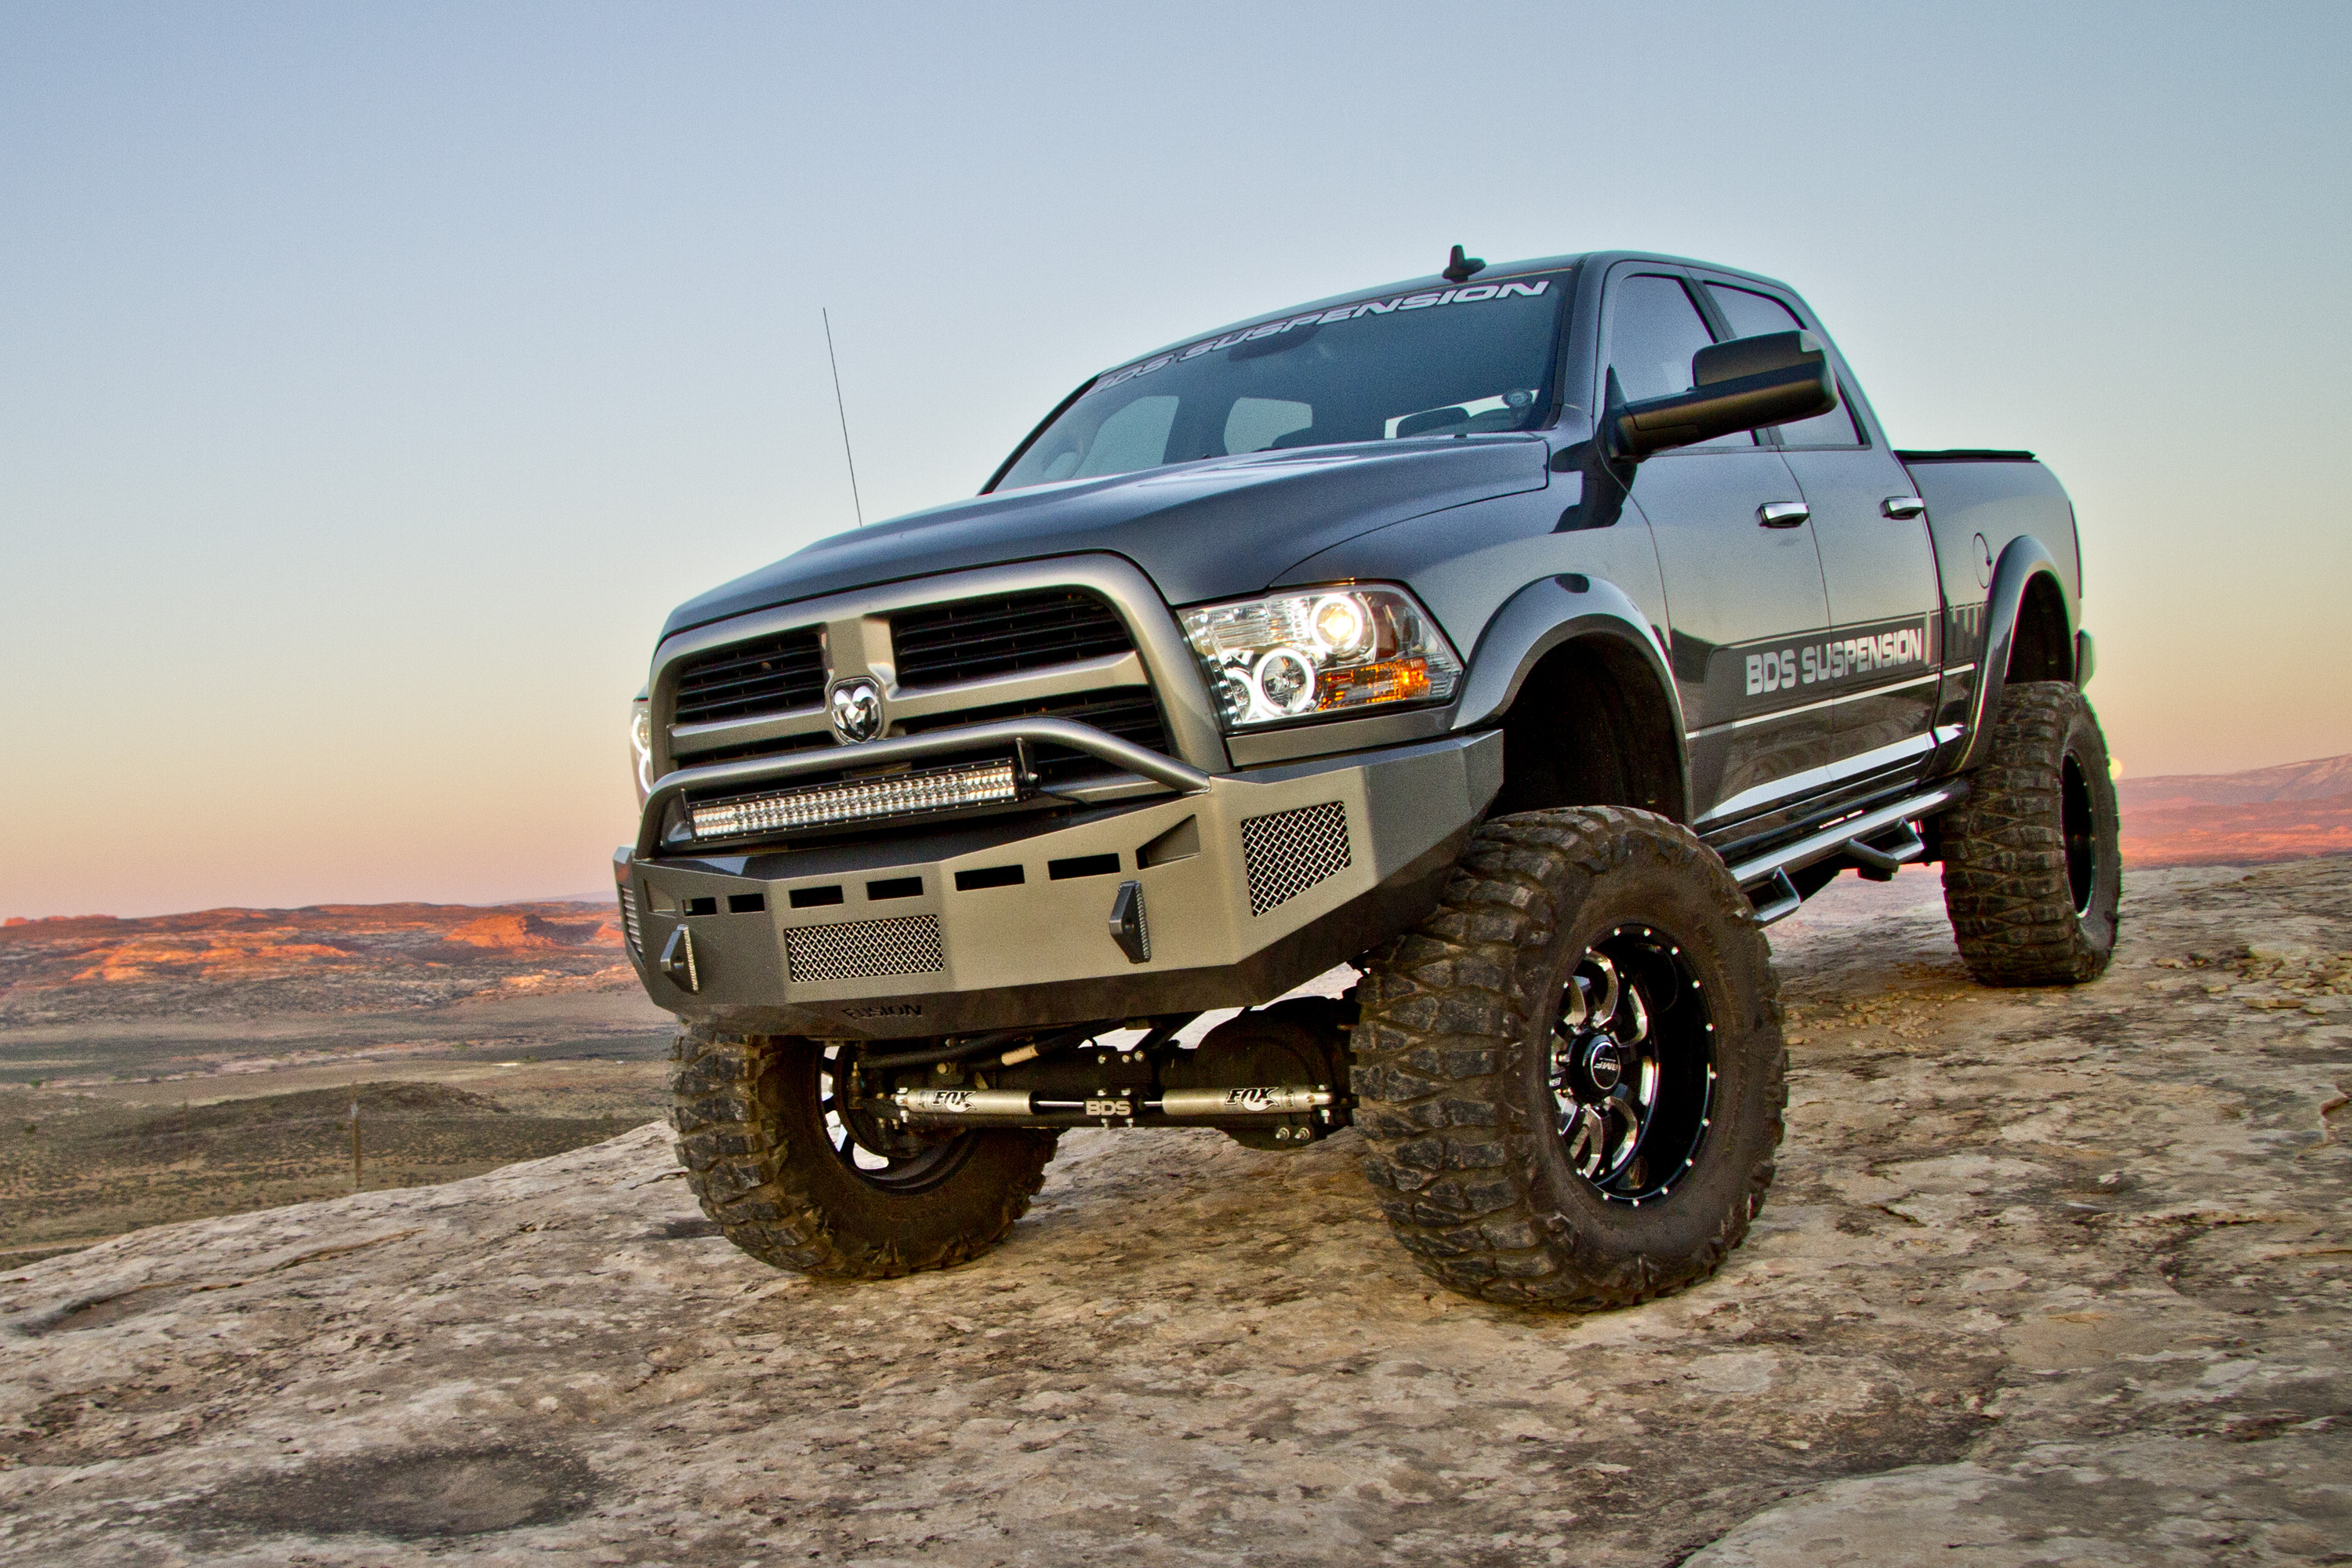 ram 3500 w 8 lift kit on 40s hires image project slate - Dodge 2015 Truck 3500